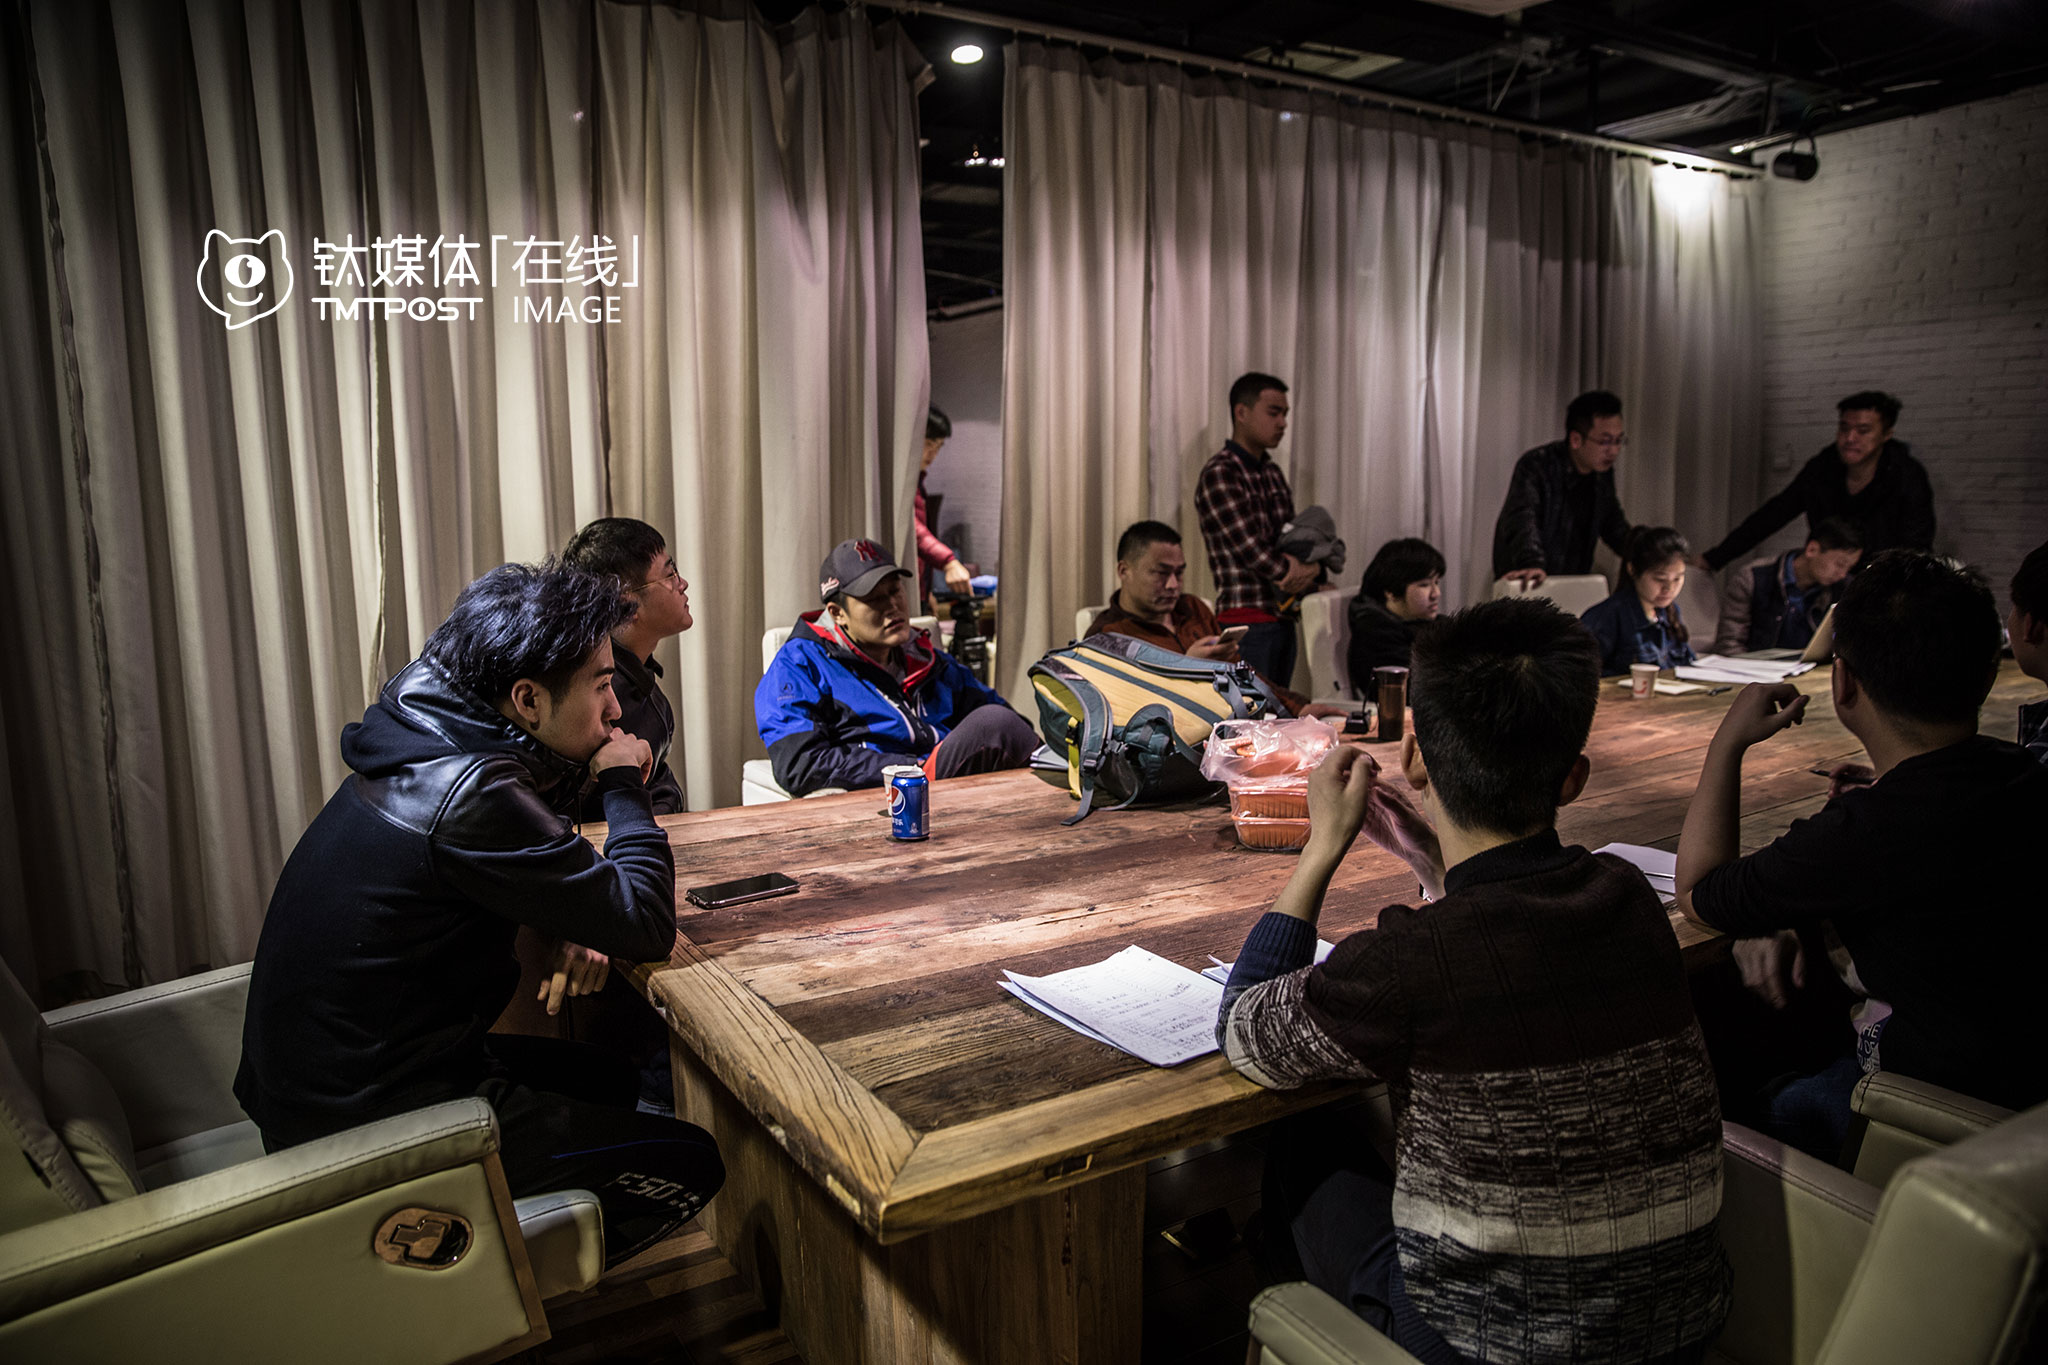 March 23rd, 1:00 am. The first filming day was over. The cast was having a meeting to discuss about the very first day. Even though everyone is from the same company, but this was their first cooperation together. The first few days are usually the time that they start to learn about each other and become familiar with each other's working habits. In UniMedia, every production studio functions like a production company. Once the project is approved by the company, the production studio can get scriptwriters and production resources from the company in order to form a project team. The resources in the company are very commercialized. The cast can even hire people outside the company. In some way, the production studios are independent from each other and handle and manage the loss and revenue themselves.